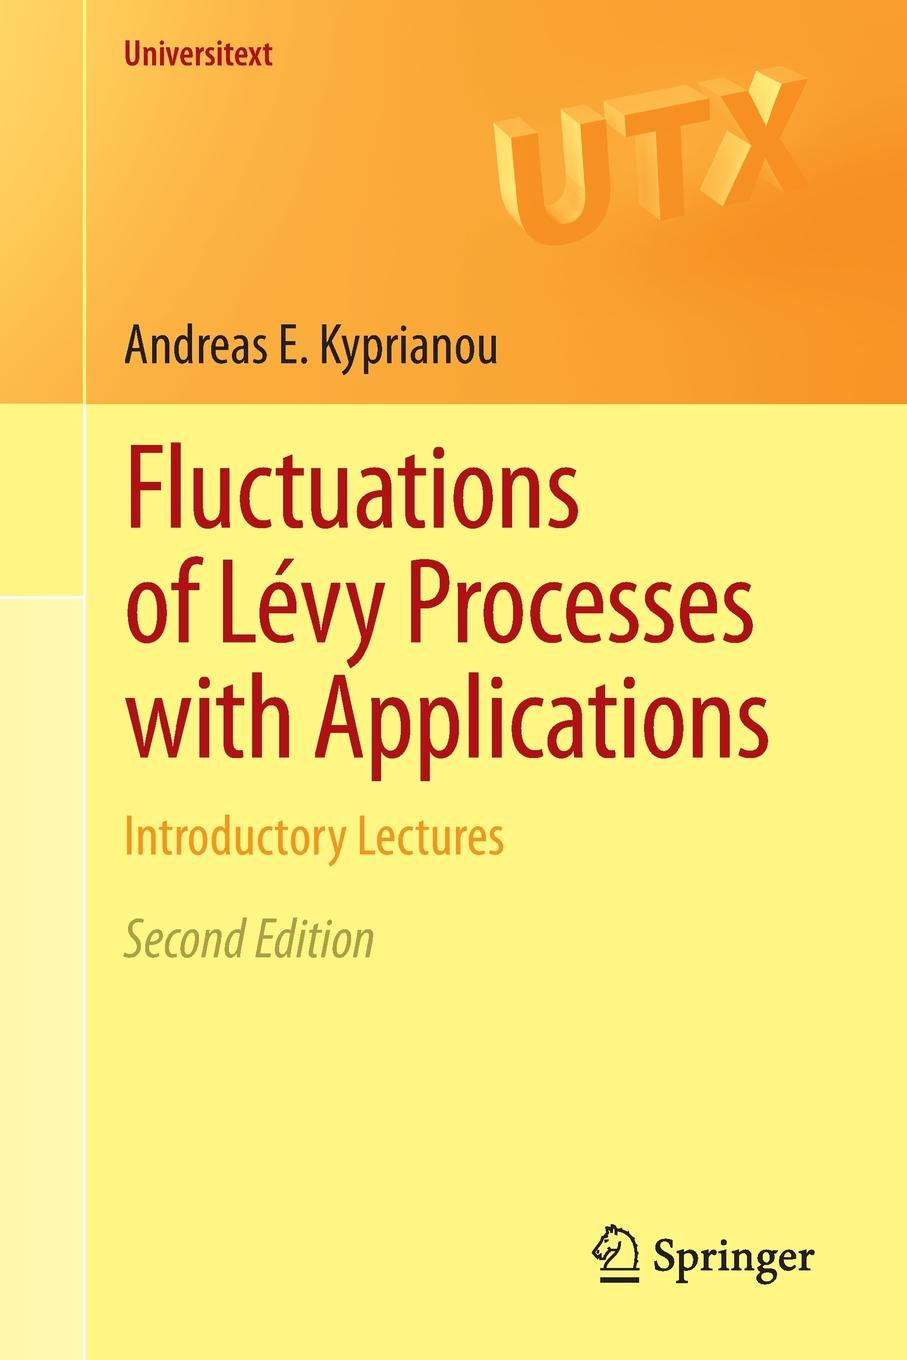 Andreas E. Kyprianou Fluctuations of Levy Processes with Applications. Introductory Lectures m l silverstein boundary theory for symmetric markov processes